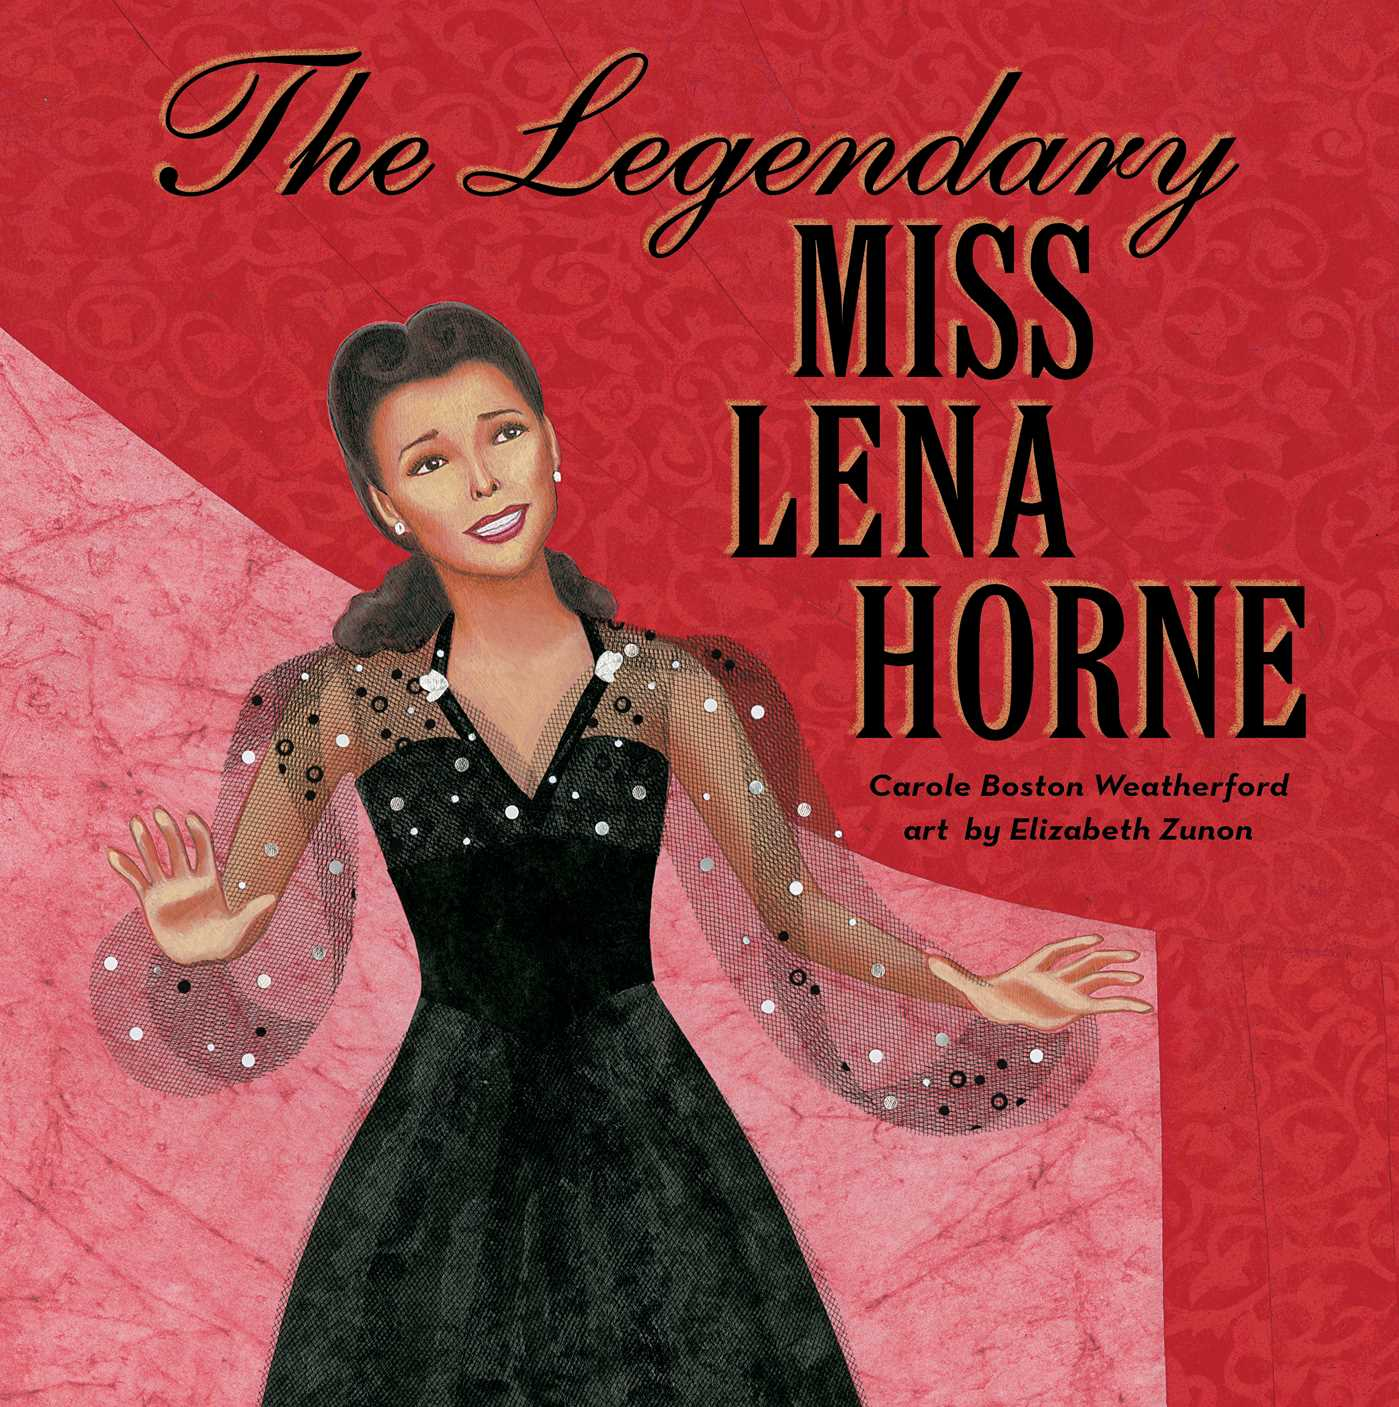 The legendary miss lena horne 9781481468251 hr